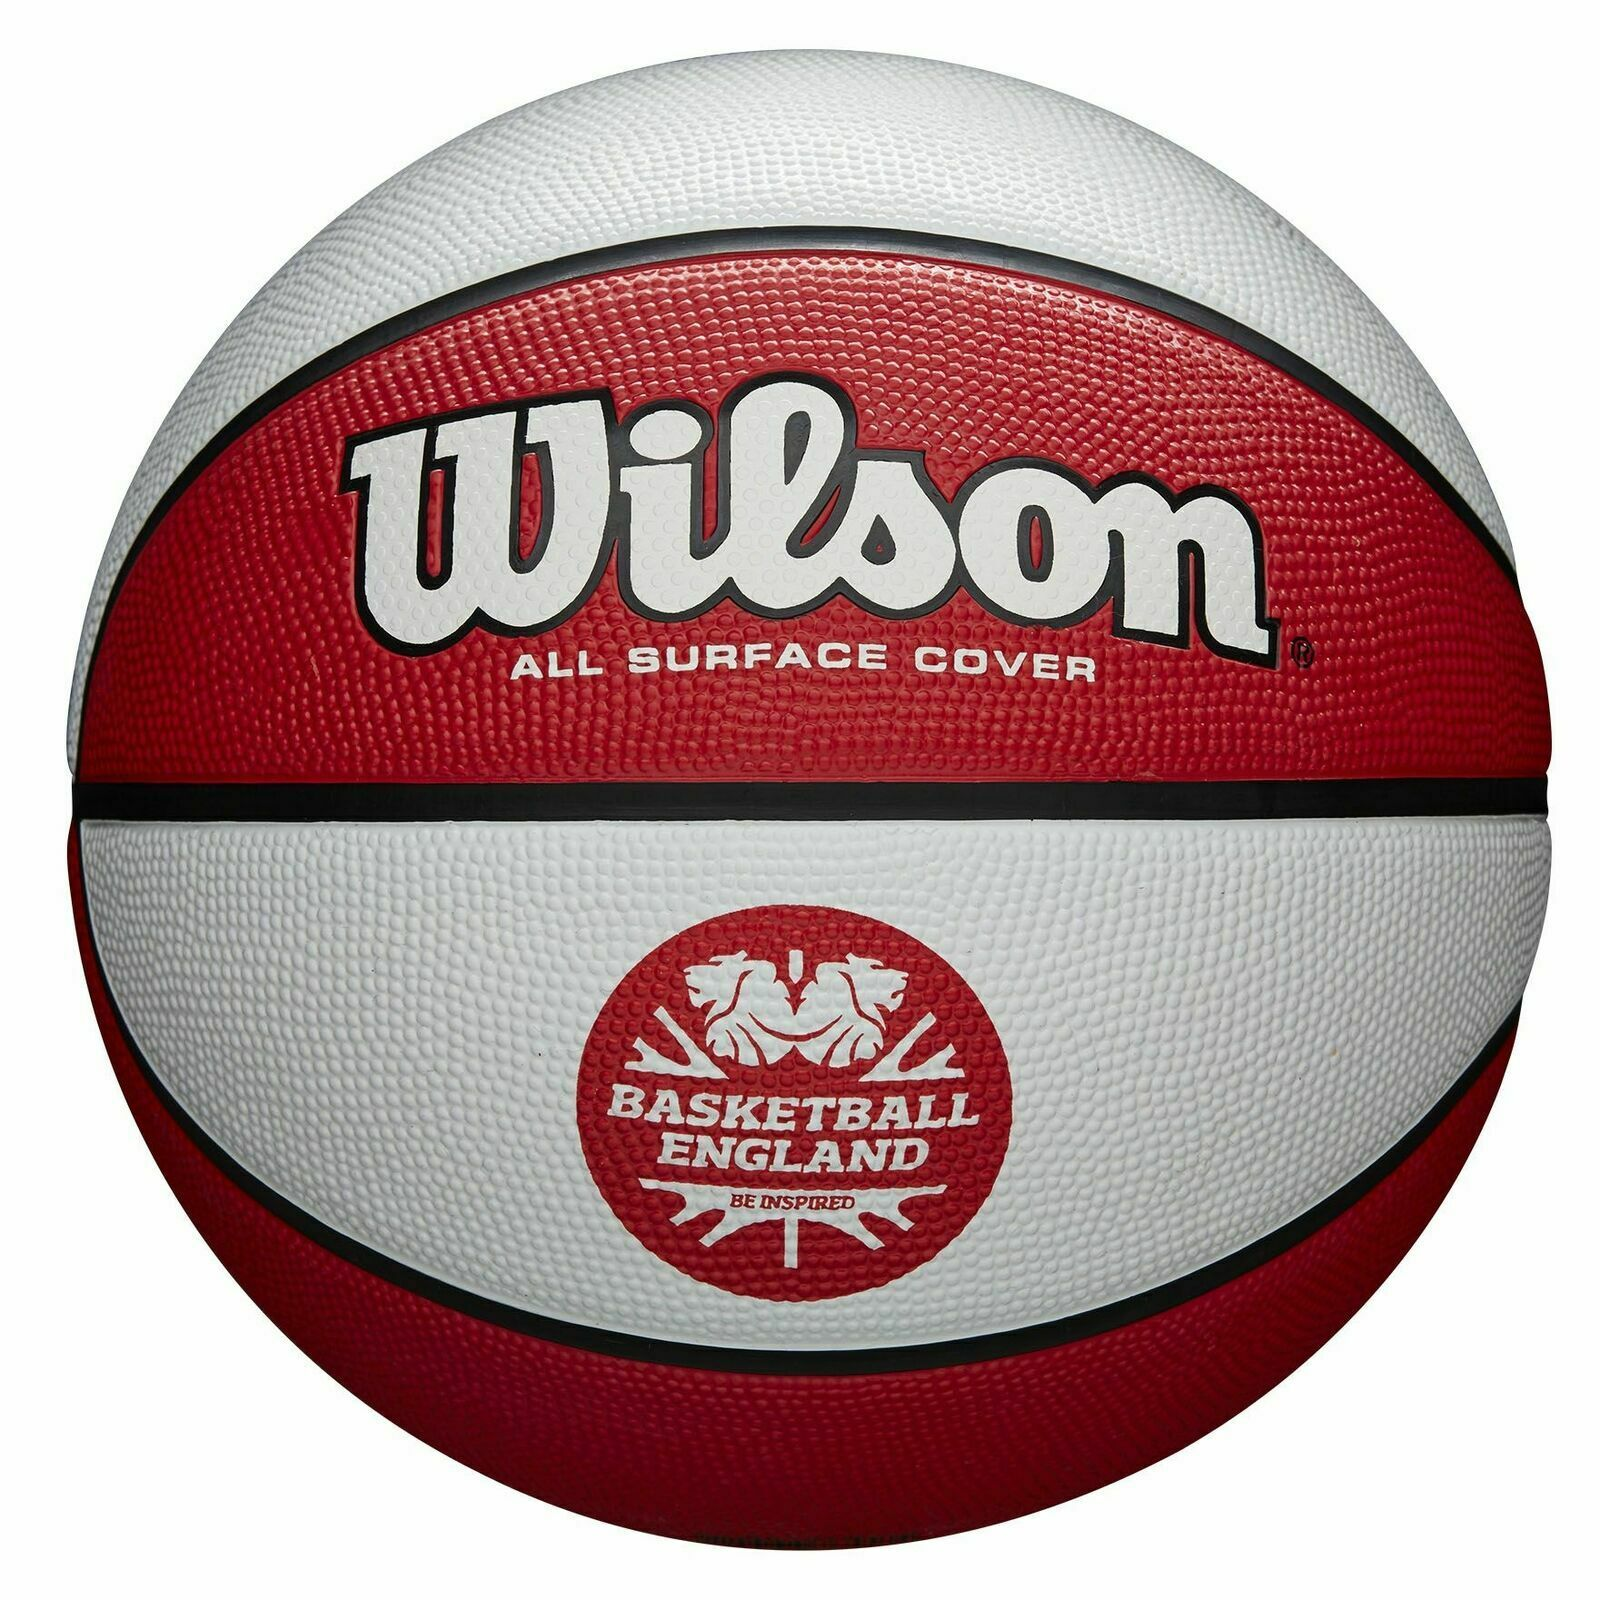 Basketball England Wilson Clutch Basketball - Package of 10 Balls, Size 6